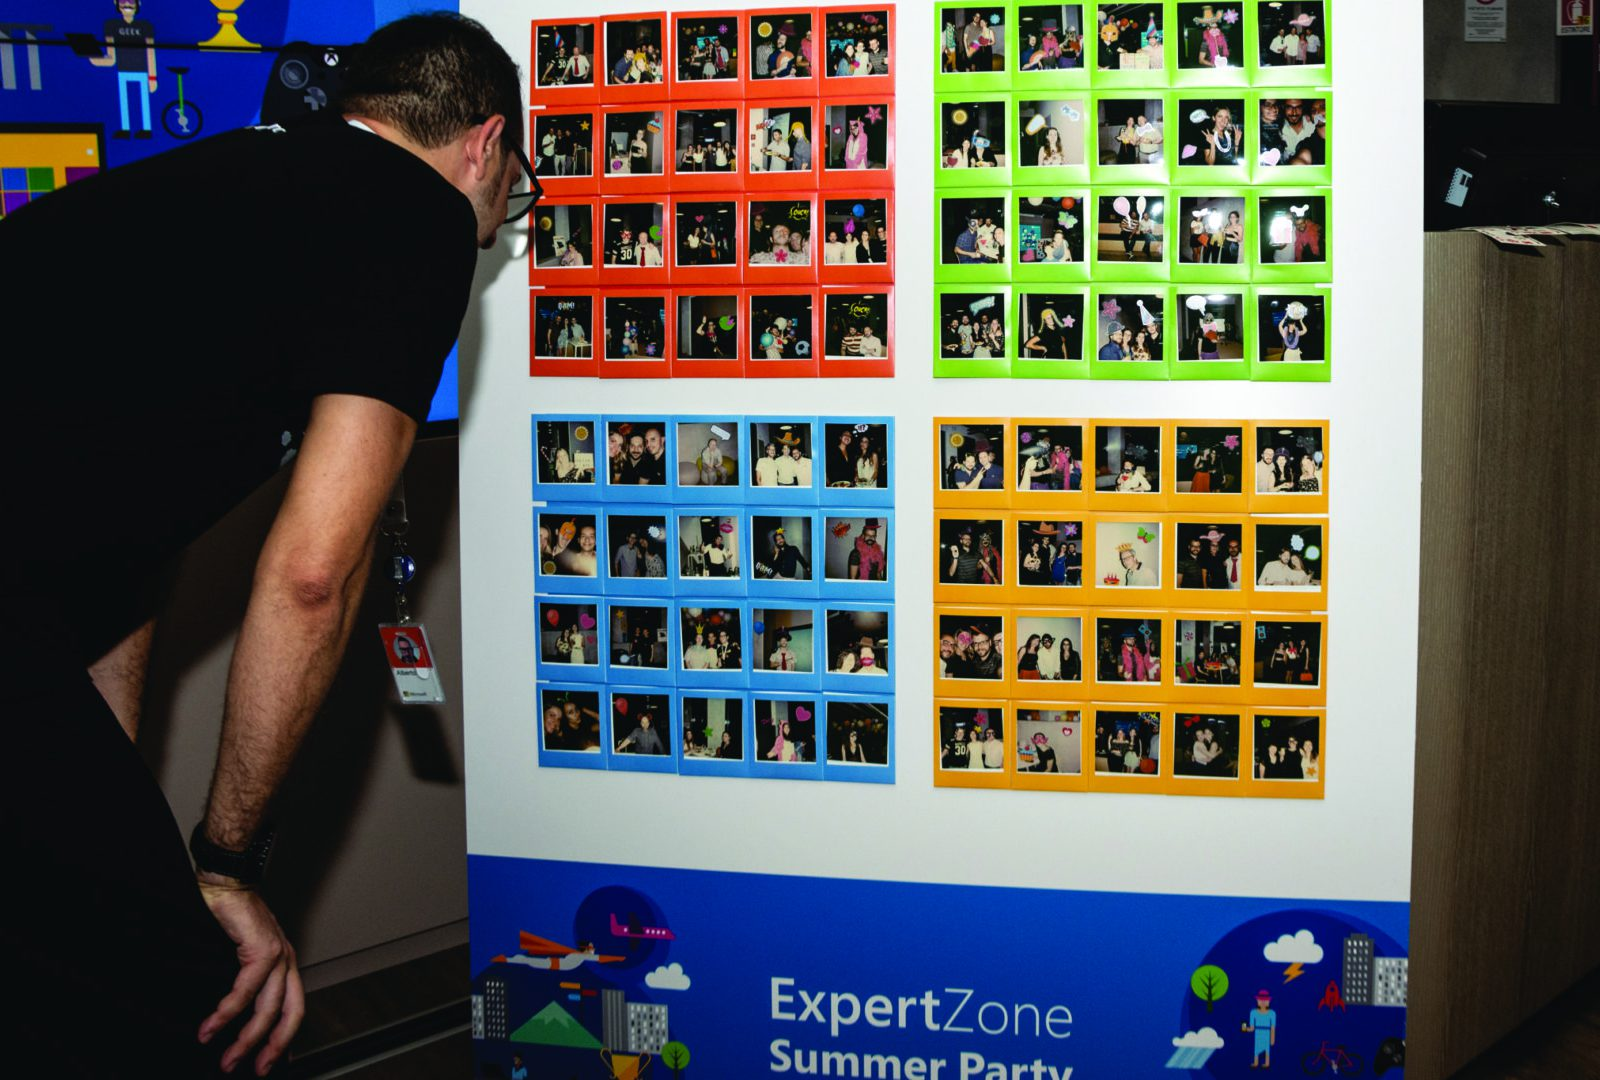 Microsoft ExpertZone Summer Party!